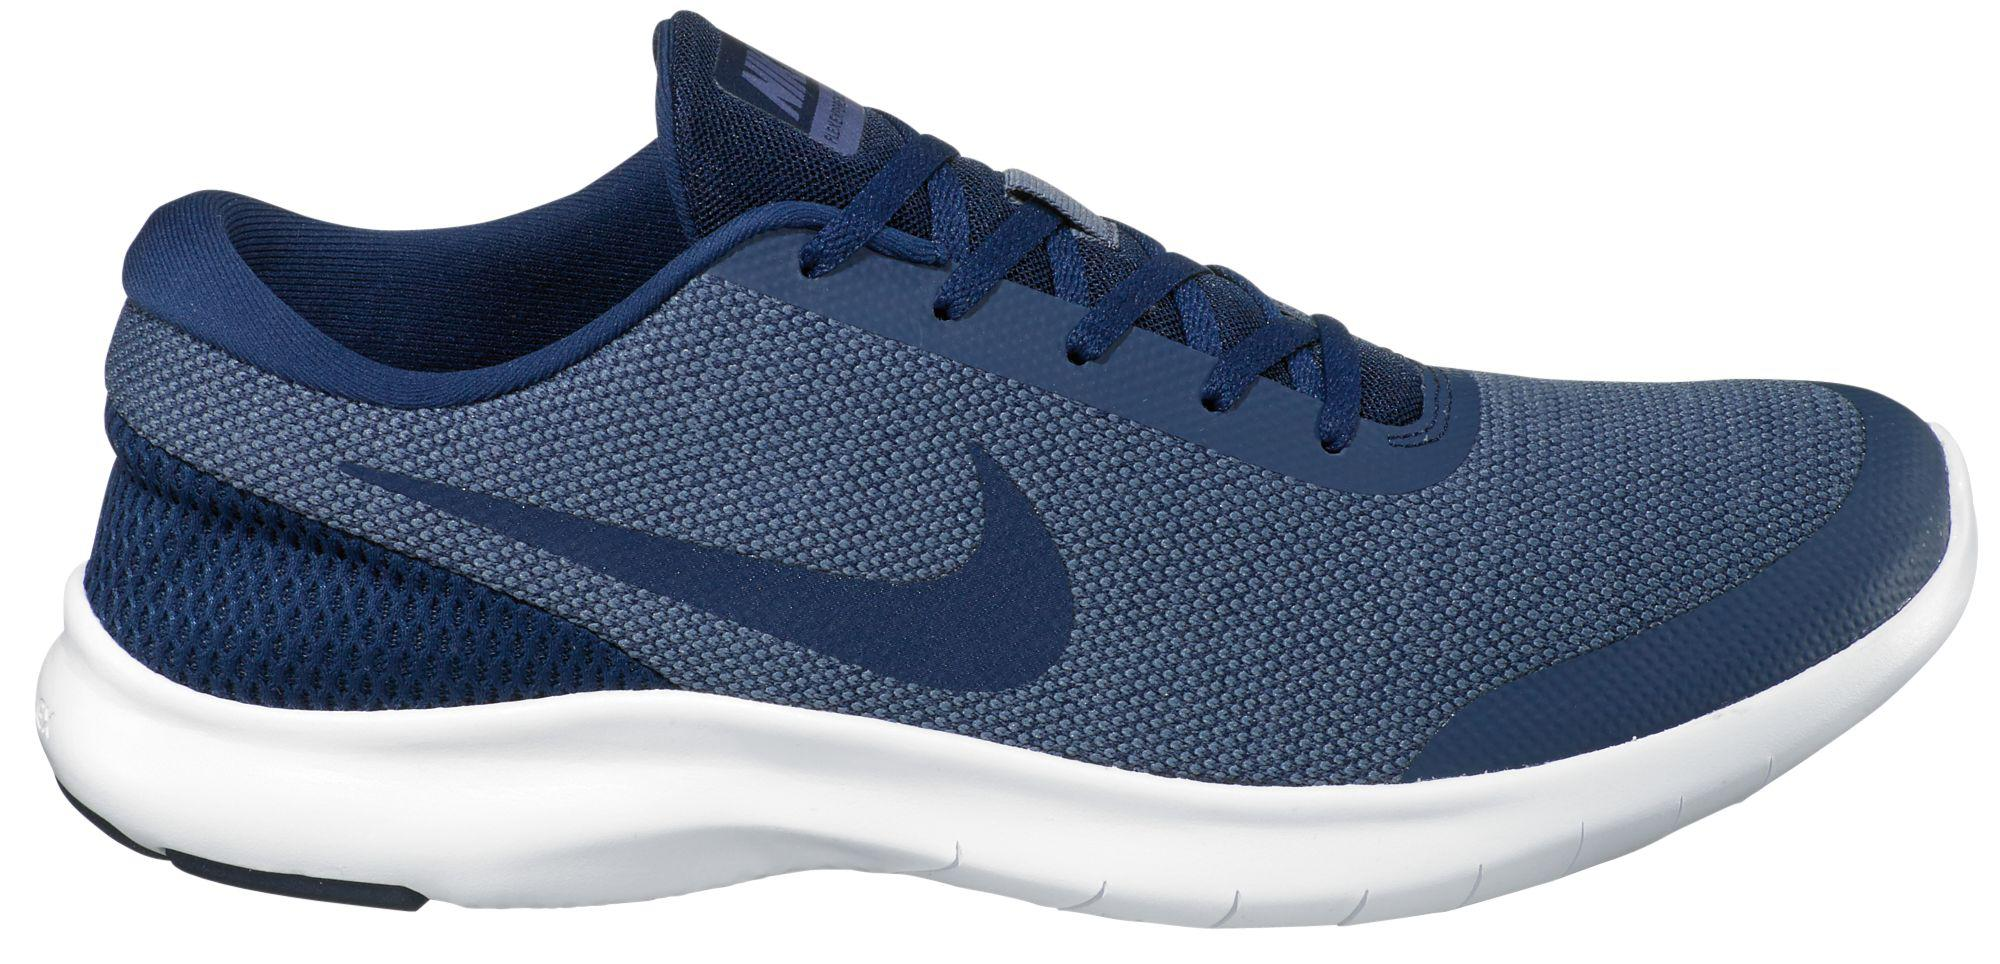 new style 3482b 93130 Nike - Blue Flex Experience Rn 7 Running Shoes for Men - Lyst